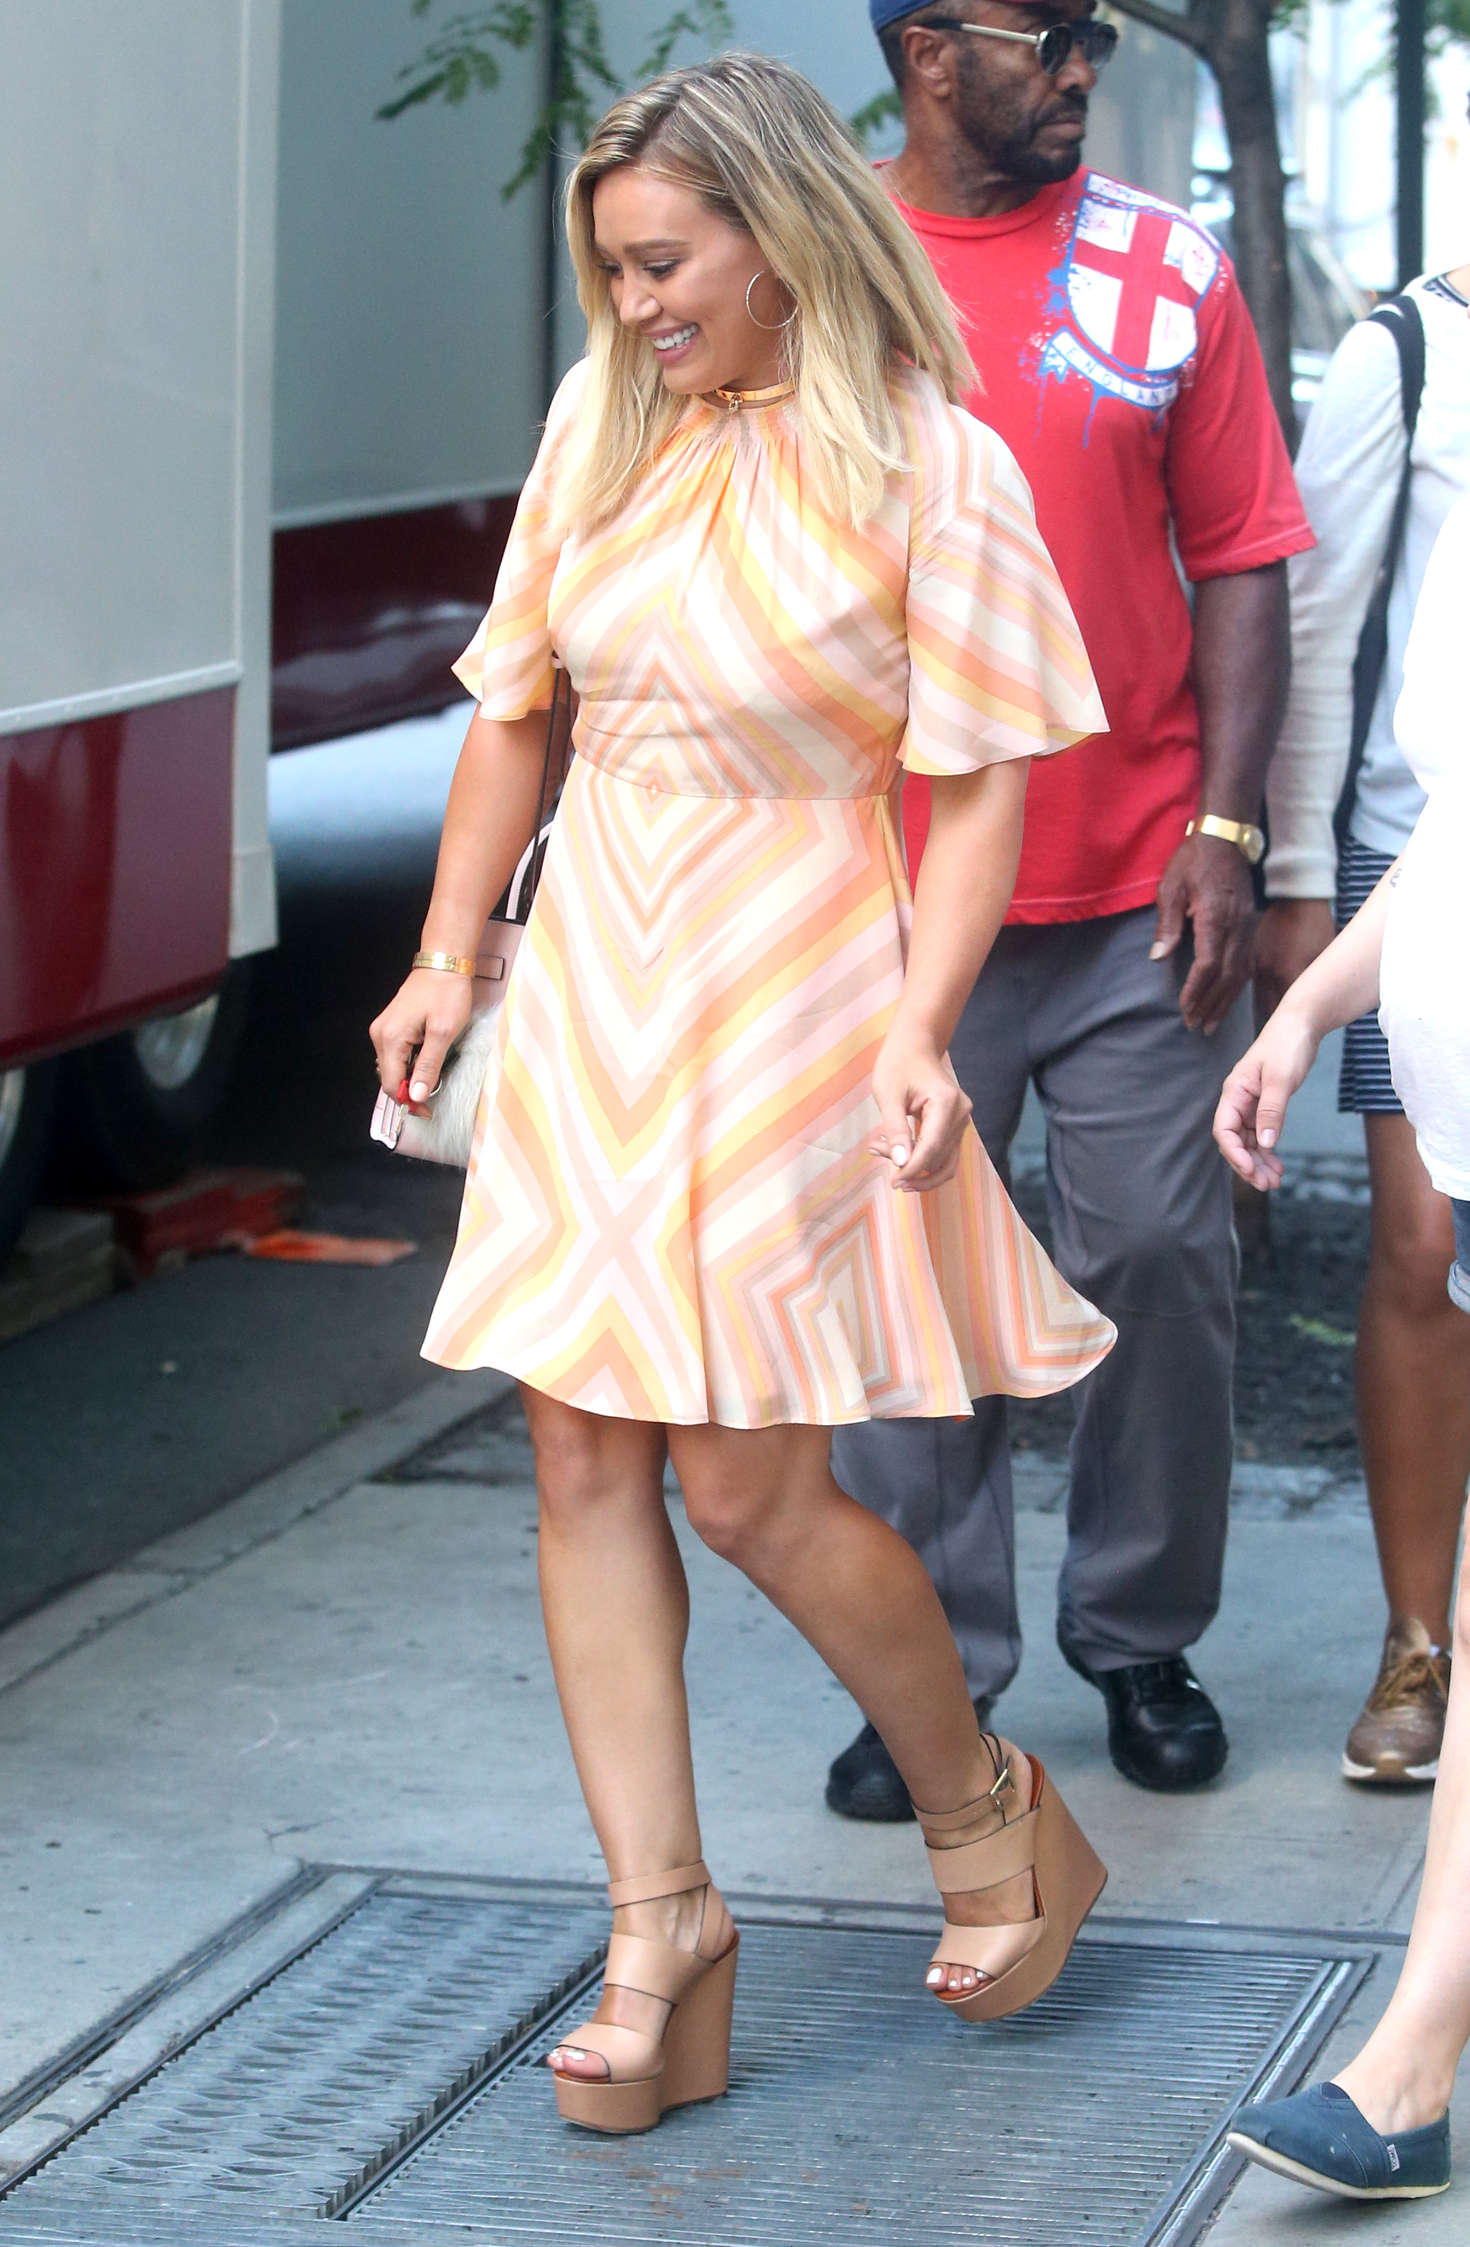 Hilary Duff 2016 : Hilary Duff in Mini Dress on the set of Younger -04